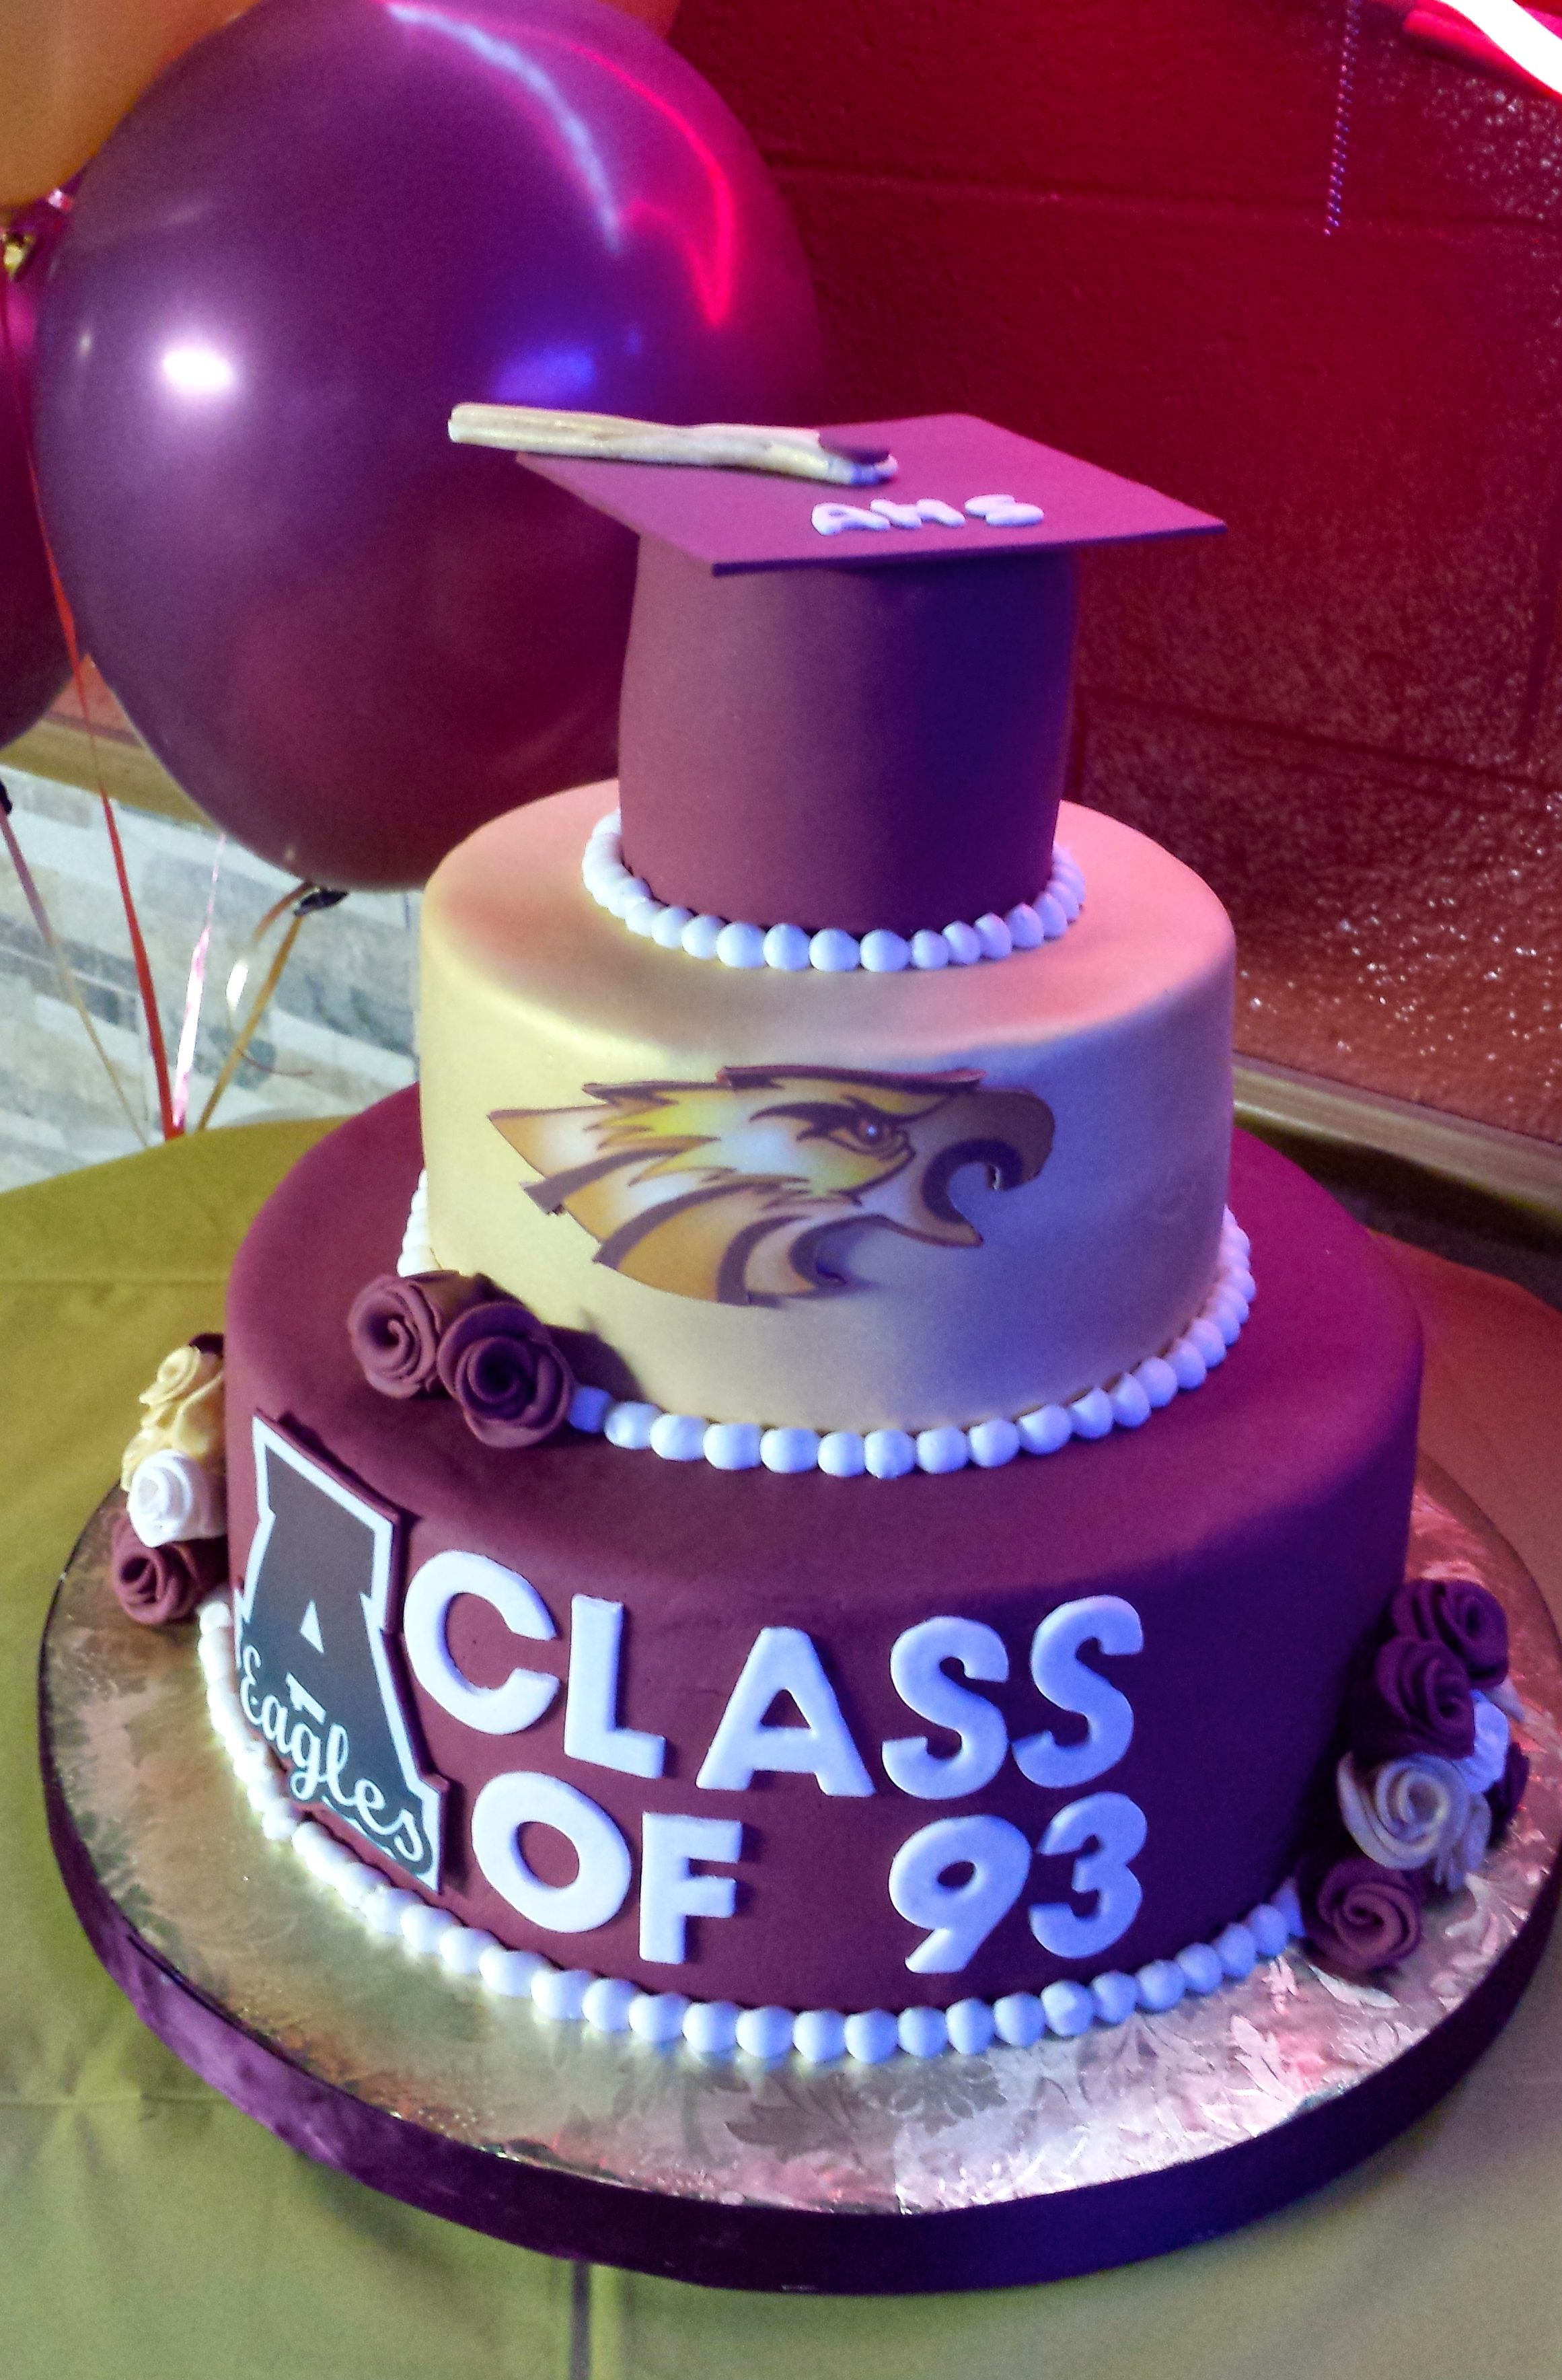 20 Year High School Reunion Cake With Images High School Class